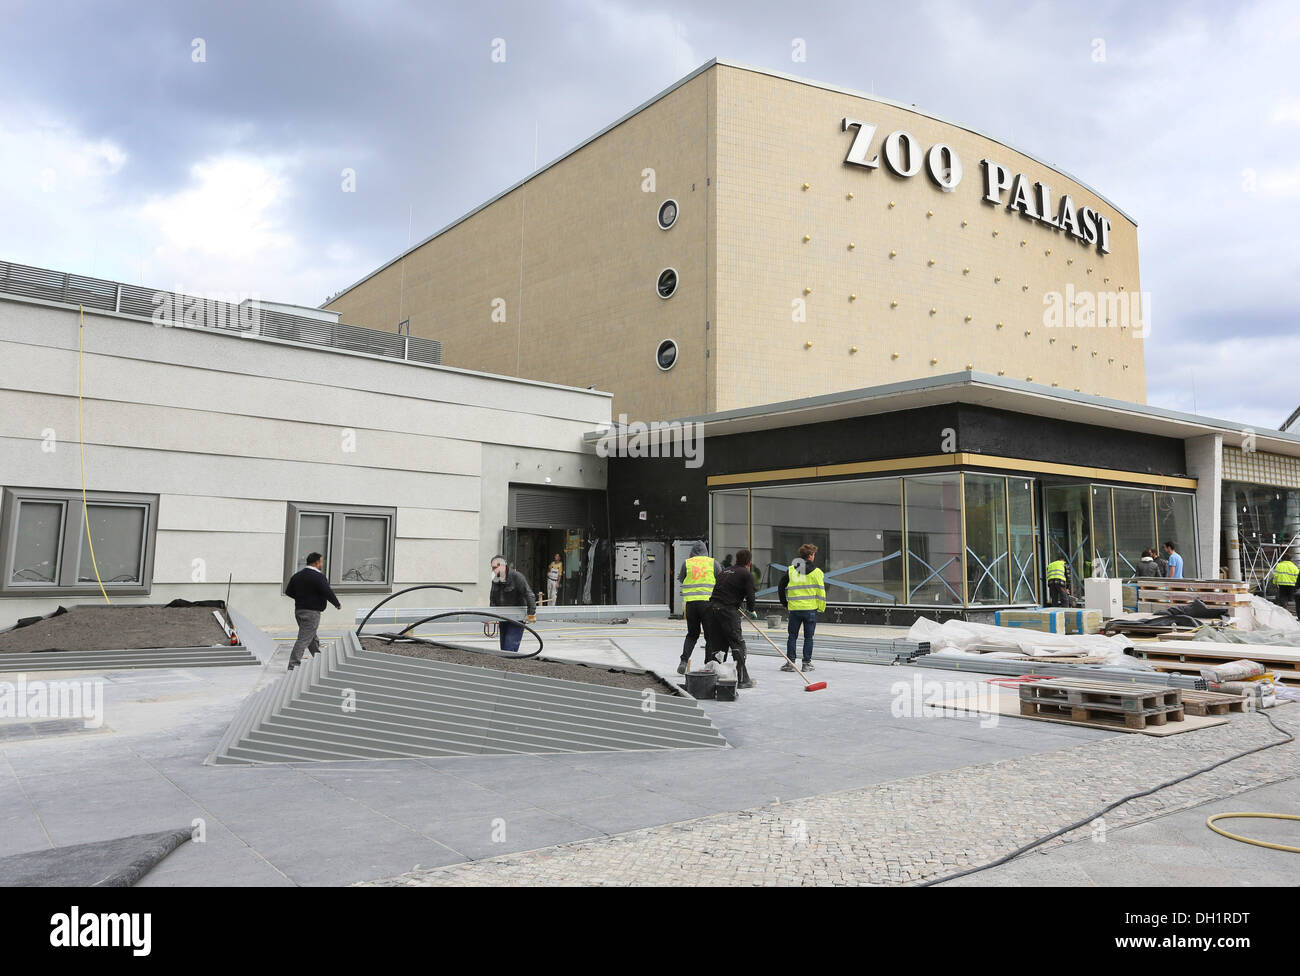 Berlin, Germany. 29th Oct, 2013. The cinema Zoo Palast in Berlin, Germany, 29 October 2013. The cinema will re-open after two year's of renovation work with state of the art technology. Photo: STEPHANIE PILICK/dpa/Alamy Live News - Stock Image